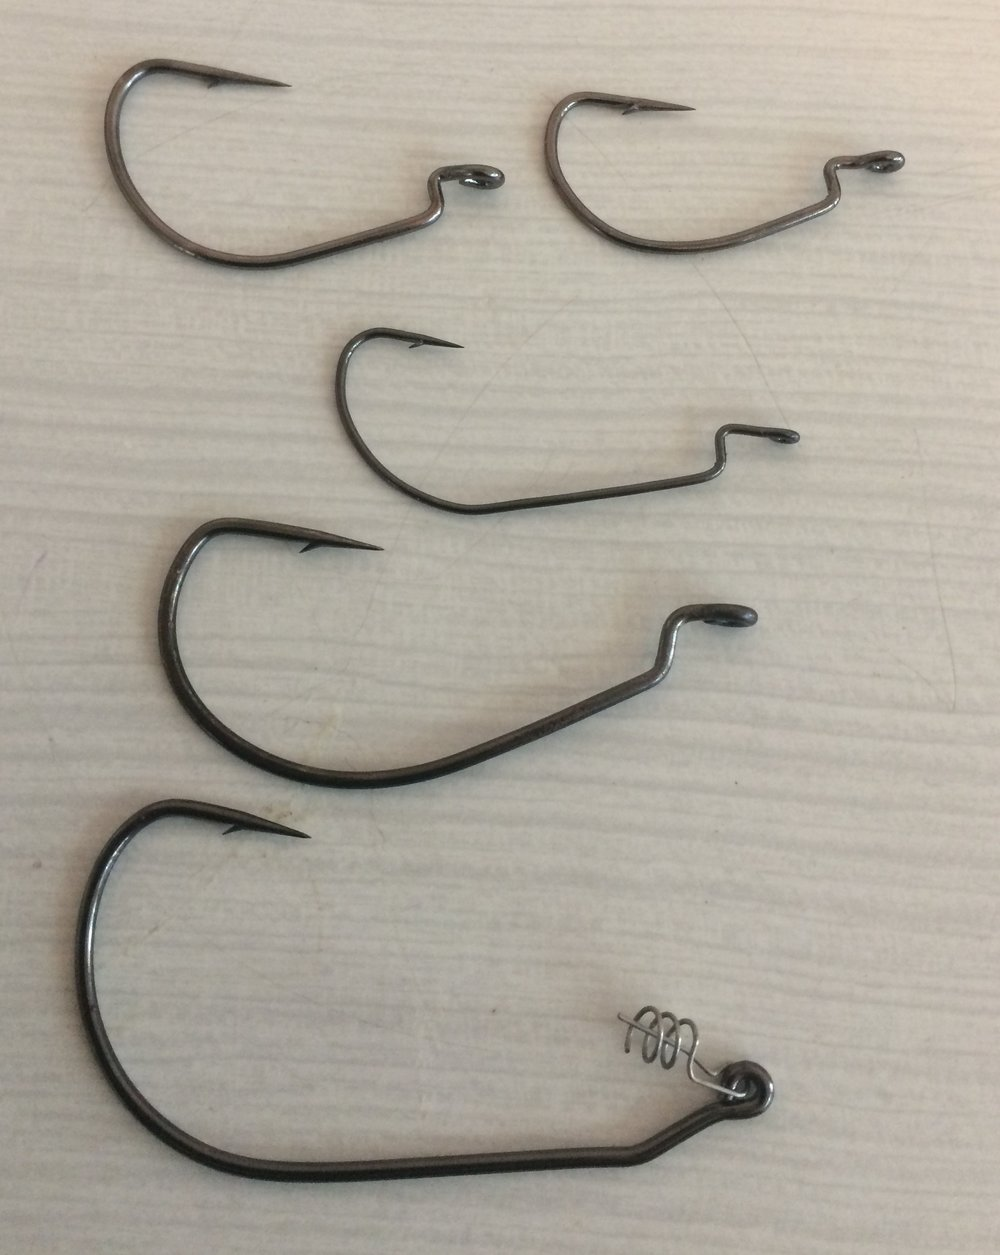 **Hooks** (Be careful and look at the pictures shown here. Not all offset hooks work with every lure. Watch in particular for gape length as hooks of the 'same size' often have different gape lengths. You want long, wide gapes and also, not hooks where the point turns back in on itself).